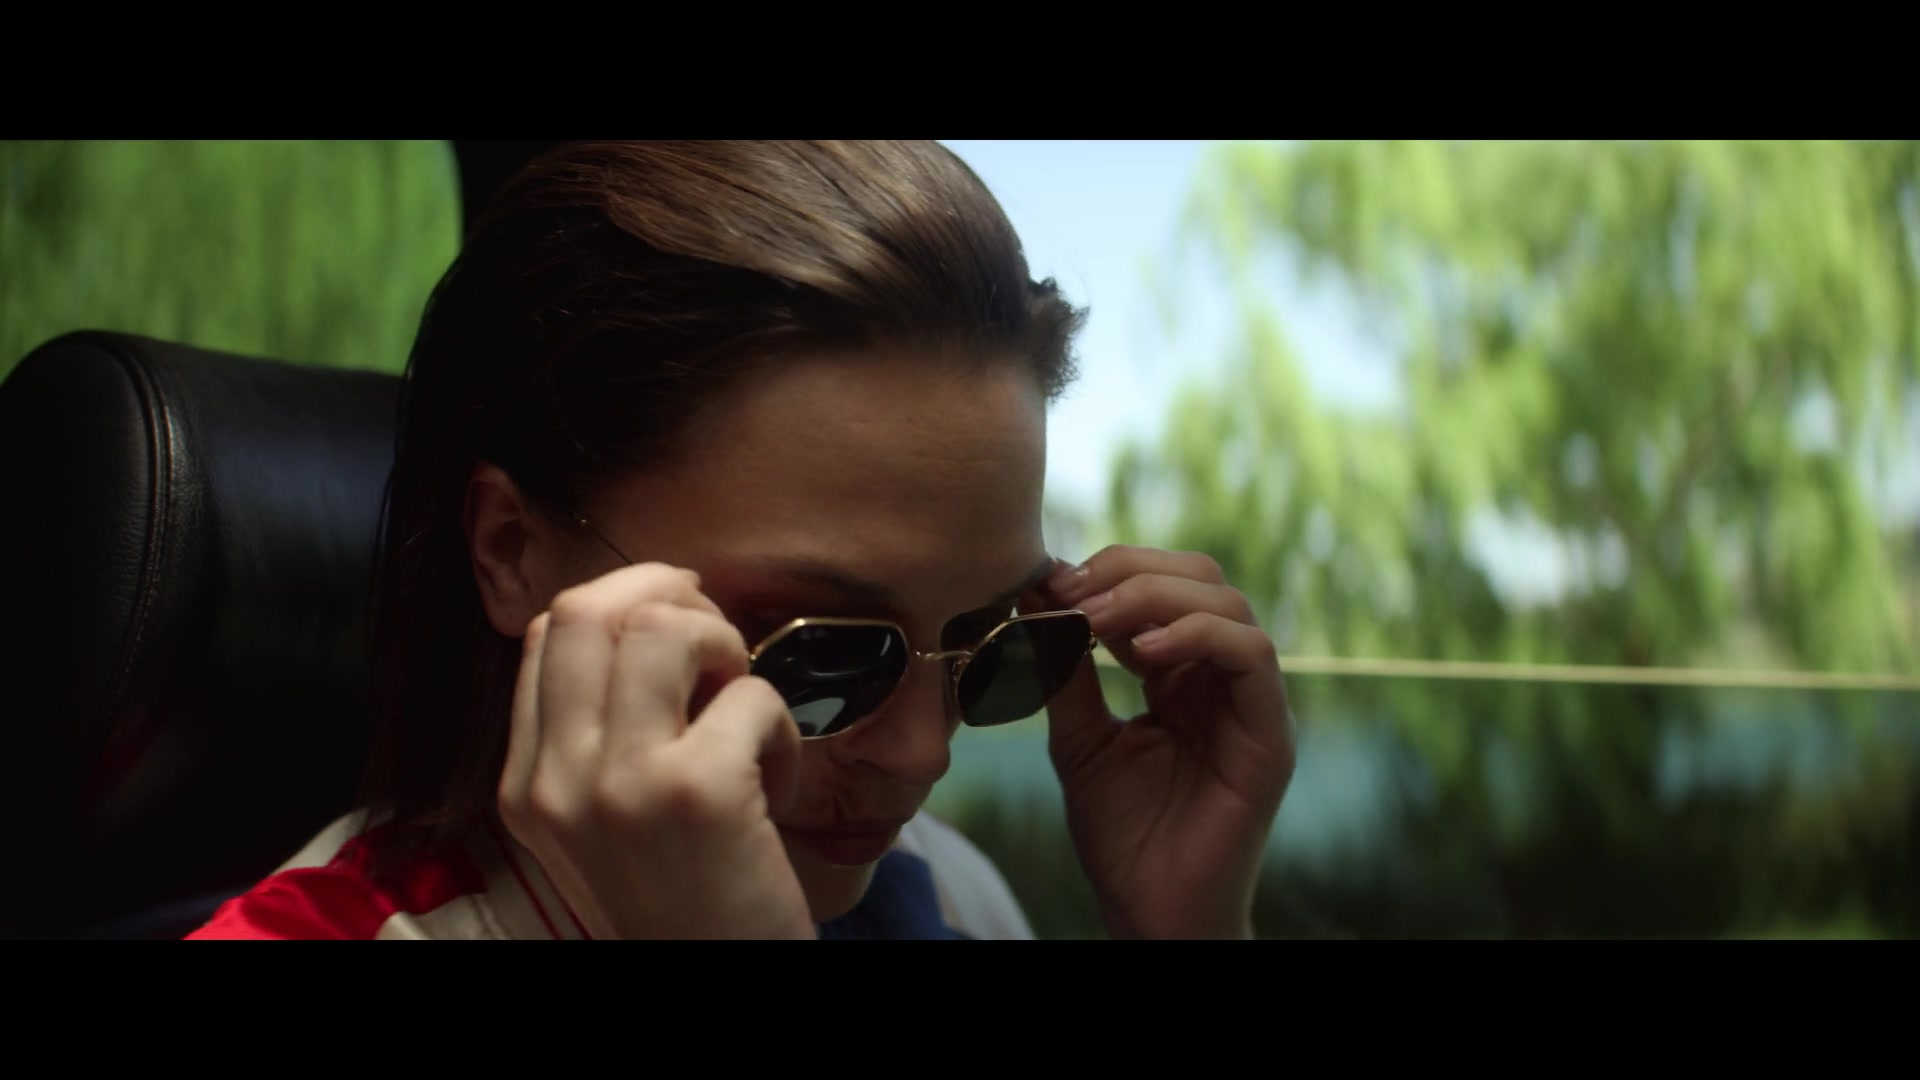 Ray Ban Sunglasses Worn By Anna Brewster In The Last Days Of American Crime 2020